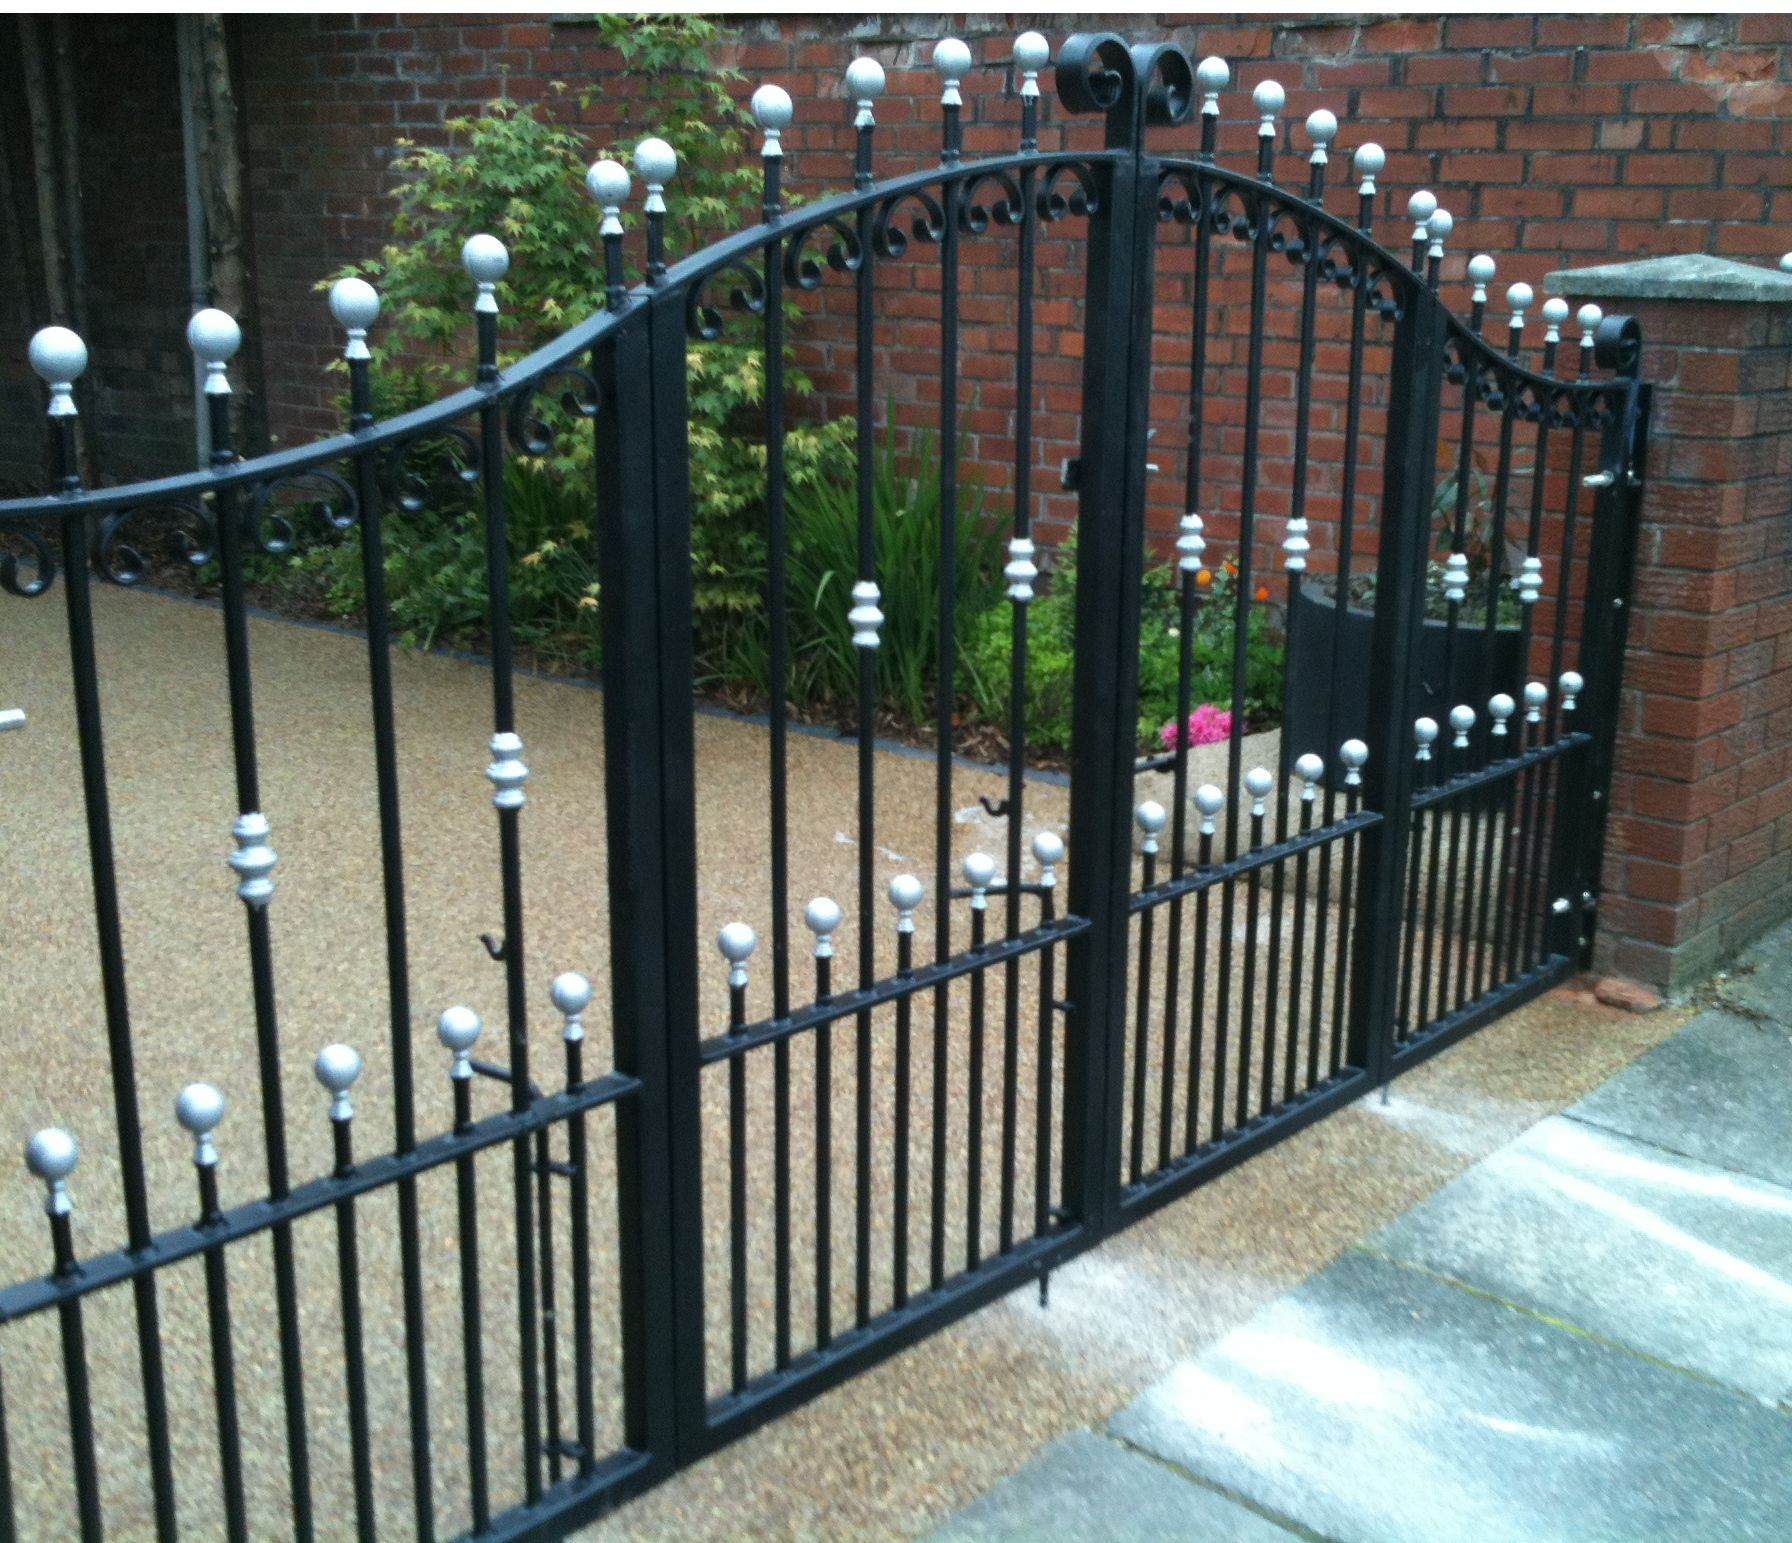 If one wants to add functionality and style to their decor, meet Adoore Designs- the #wrought iron specialists in Australia. Contact us on (03) 9001 0805